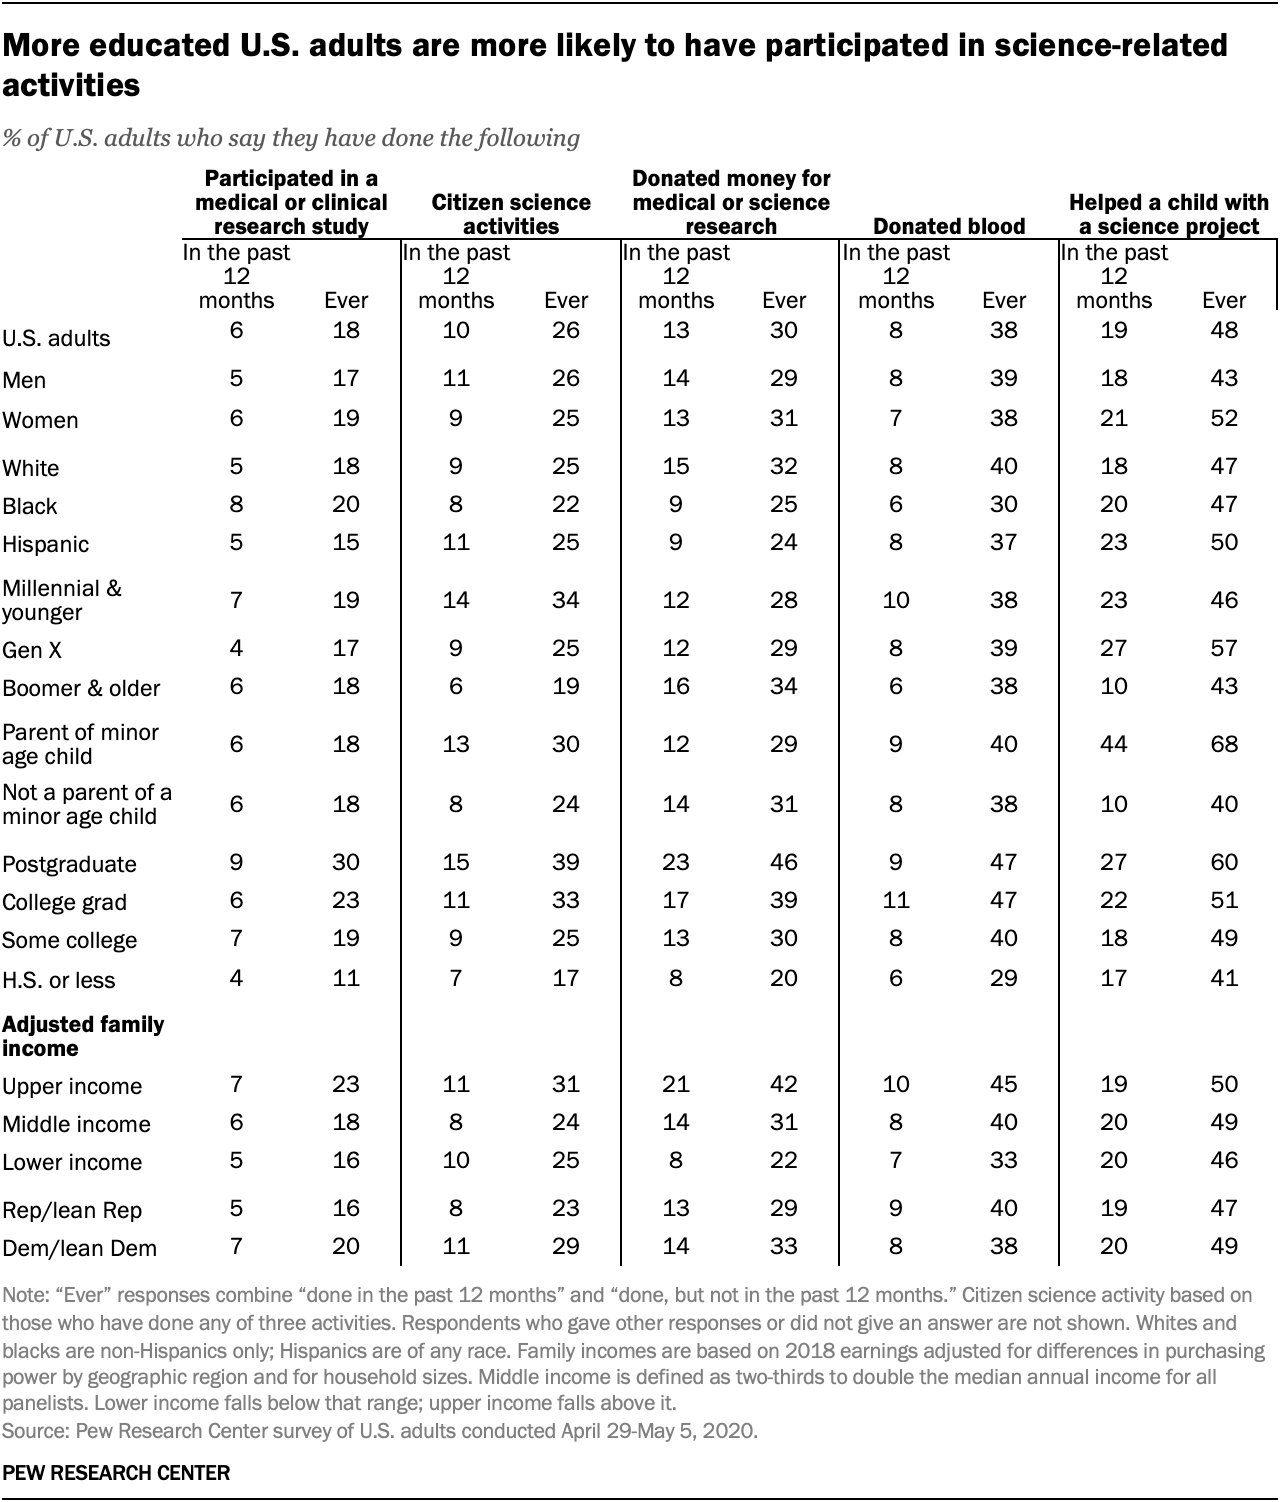 More educated U.S. adults are more likely to have participated in science-related activities